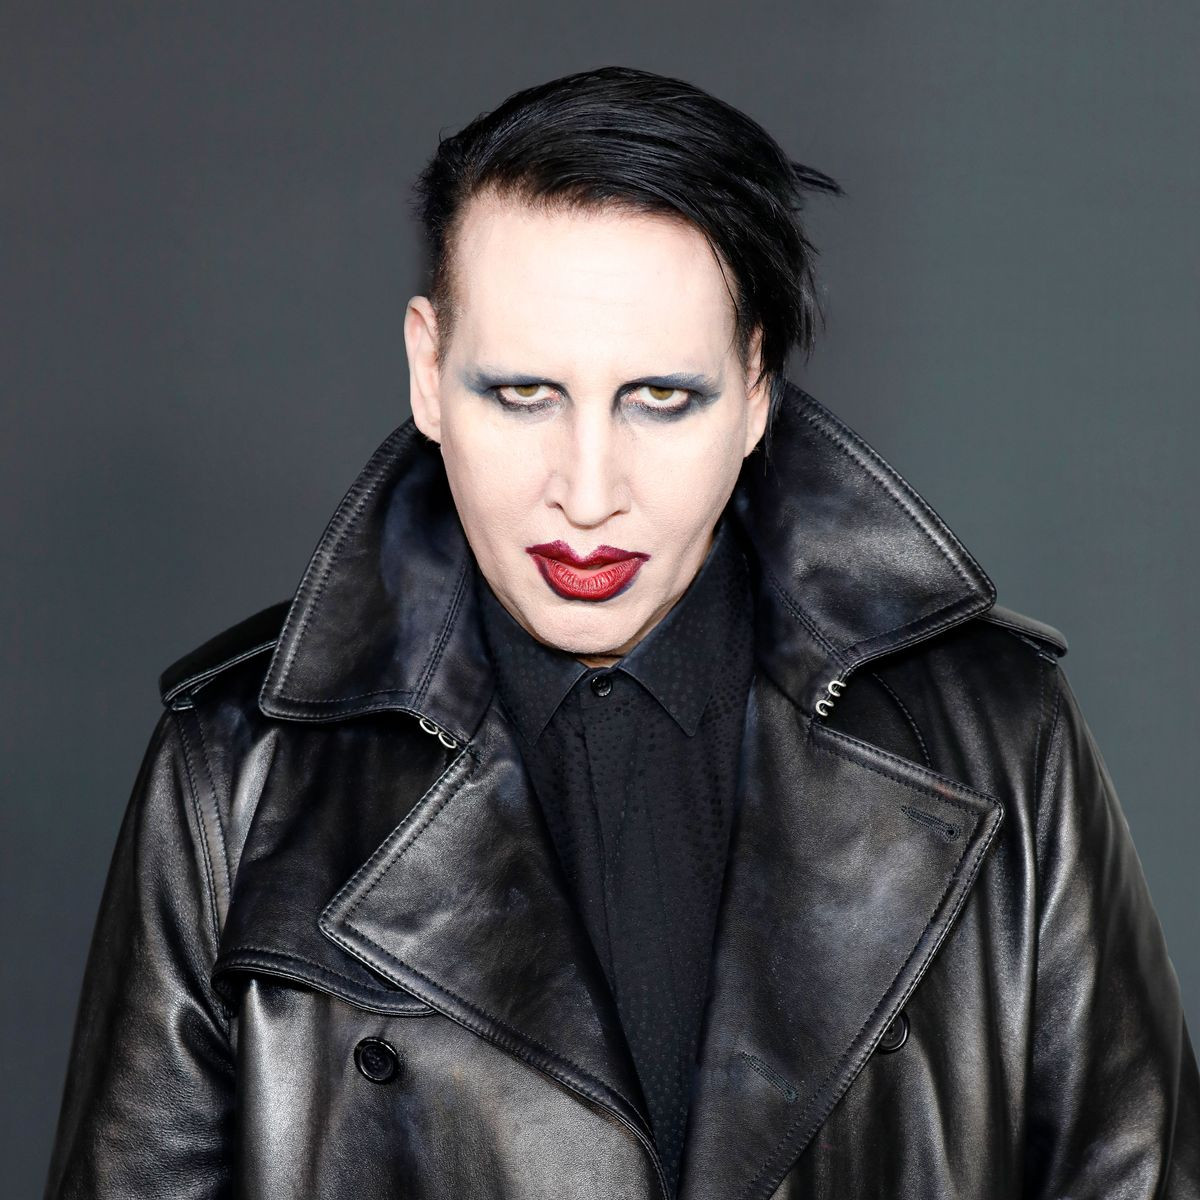 Arrest warrant for Marilyn Manson over two assault charges issued in New Hampshire